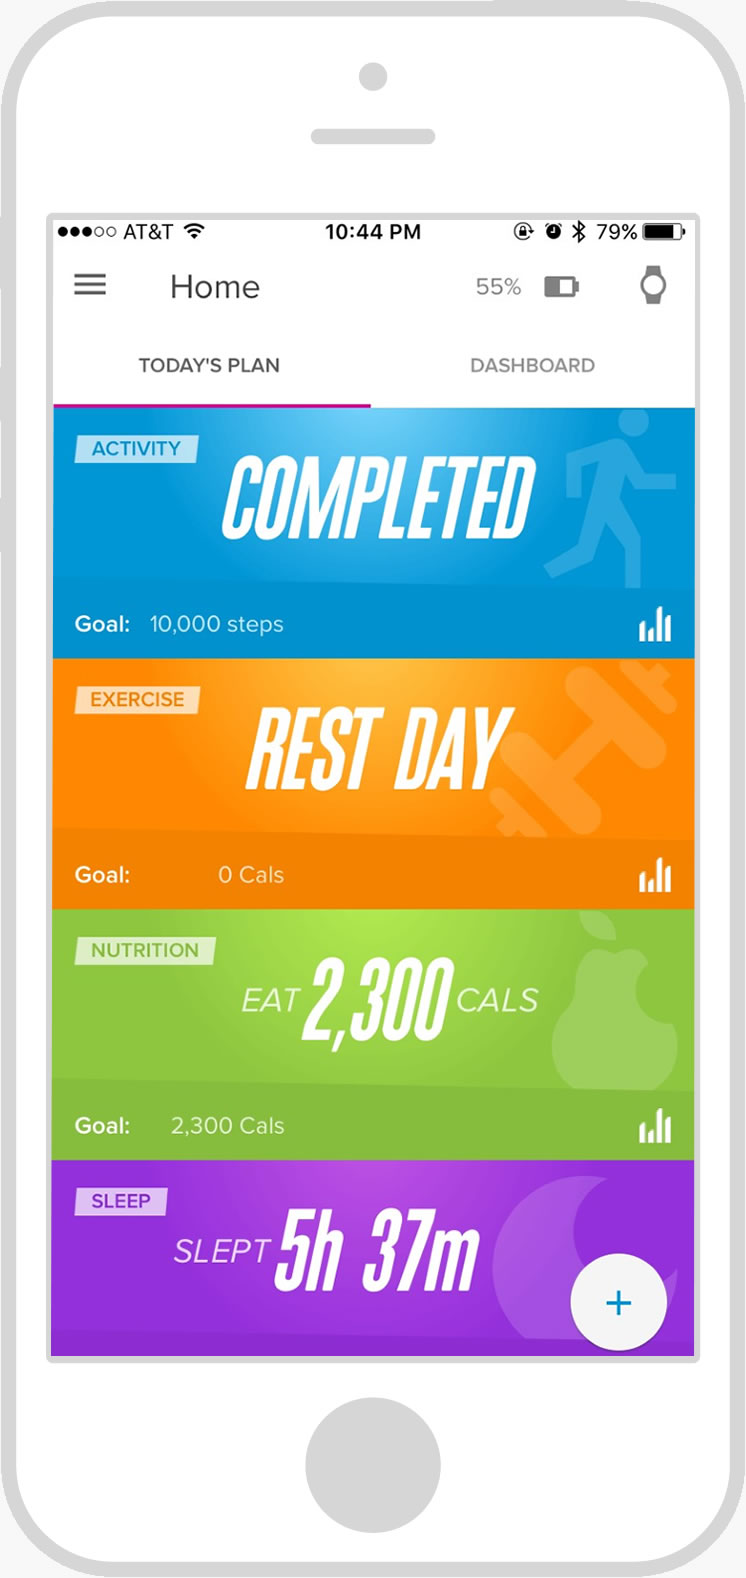 iFit Coach screen shot of Today's Plan - a summary of what you have planned to do and have completed so far for the day